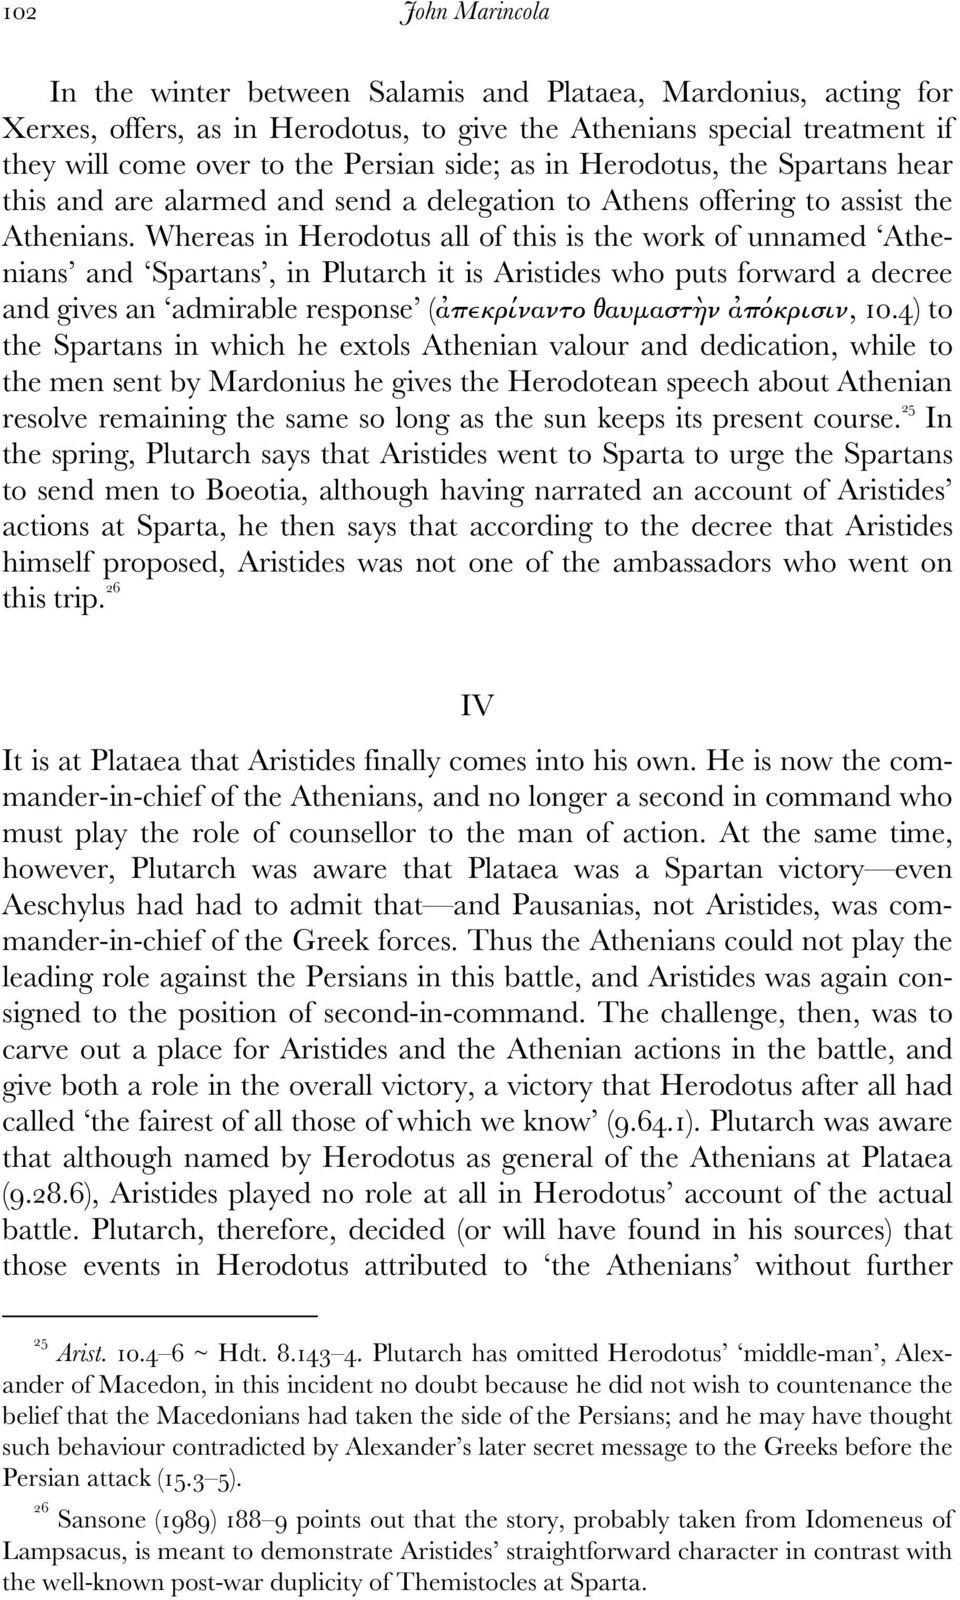 Whereas in Herodotus all of this is the work of unnamed Athenians and Spartans, in Plutarch it is Aristides who puts forward a decree and gives an admirable response (ἀπεκρίναντο θαυµαστὴν ἀπόκρισιν,